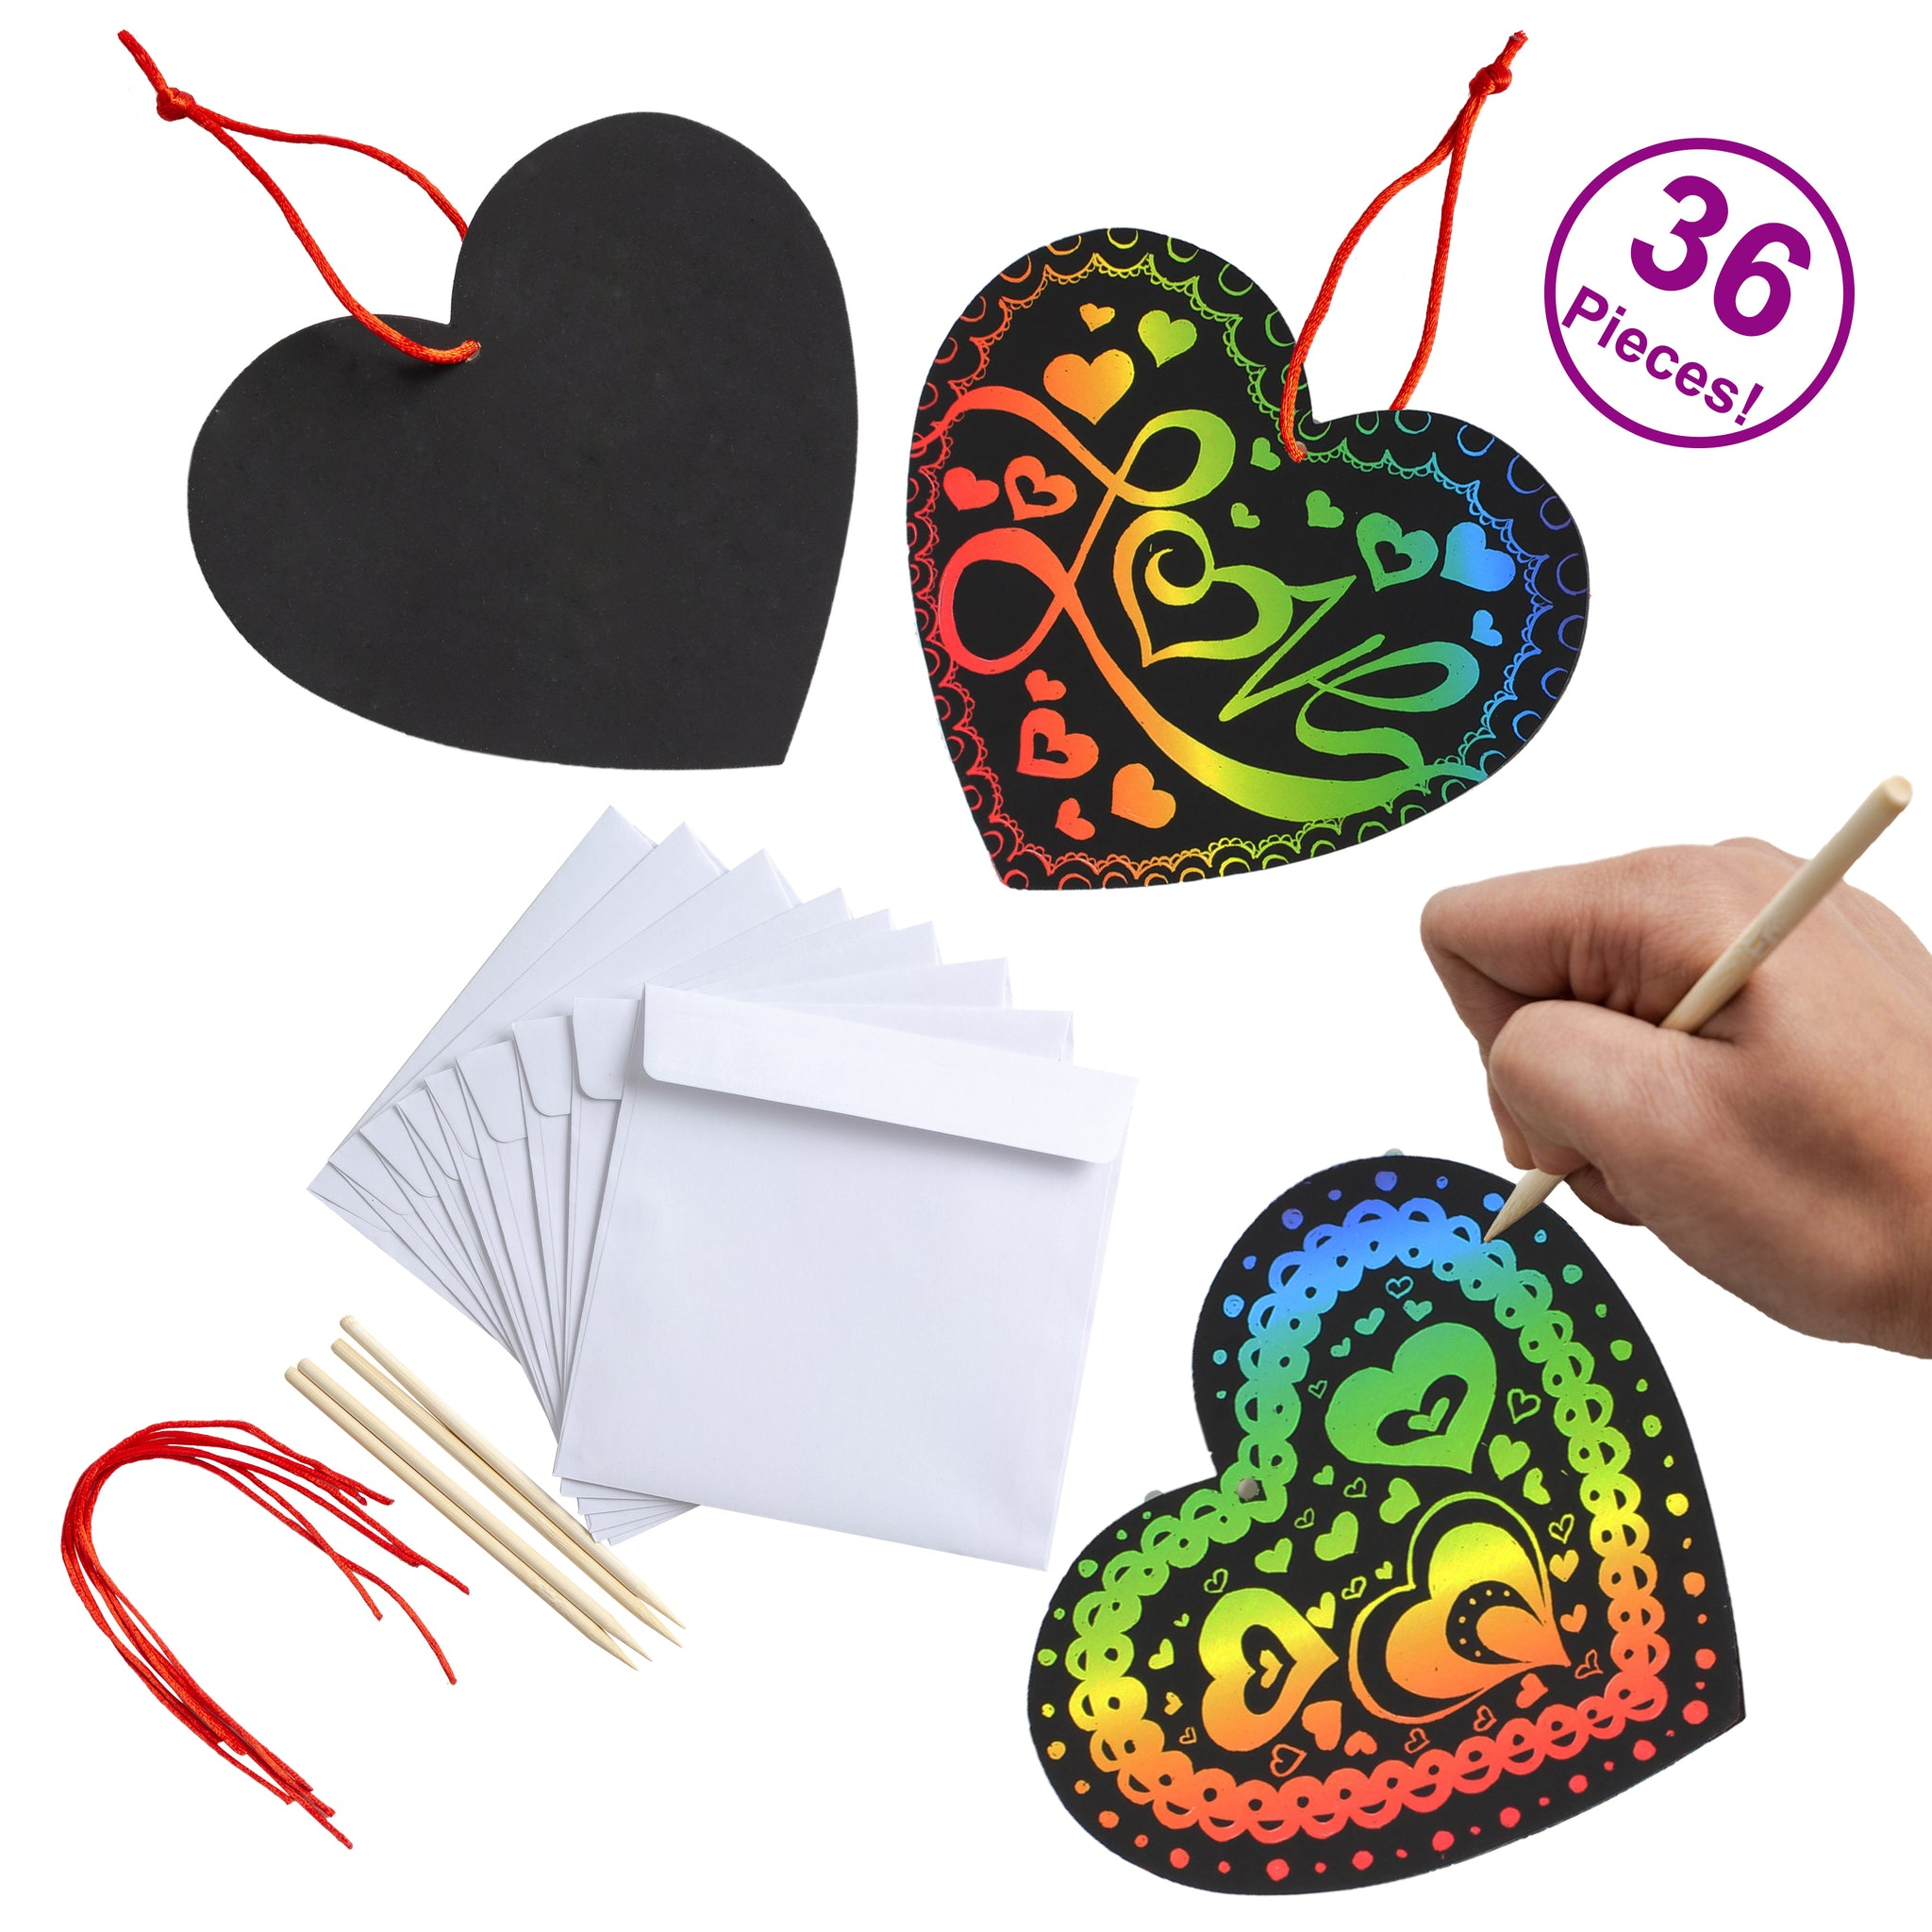 Valentines Day Gifts Cards for Kids Magic Color Scratch Heart 36 Packs